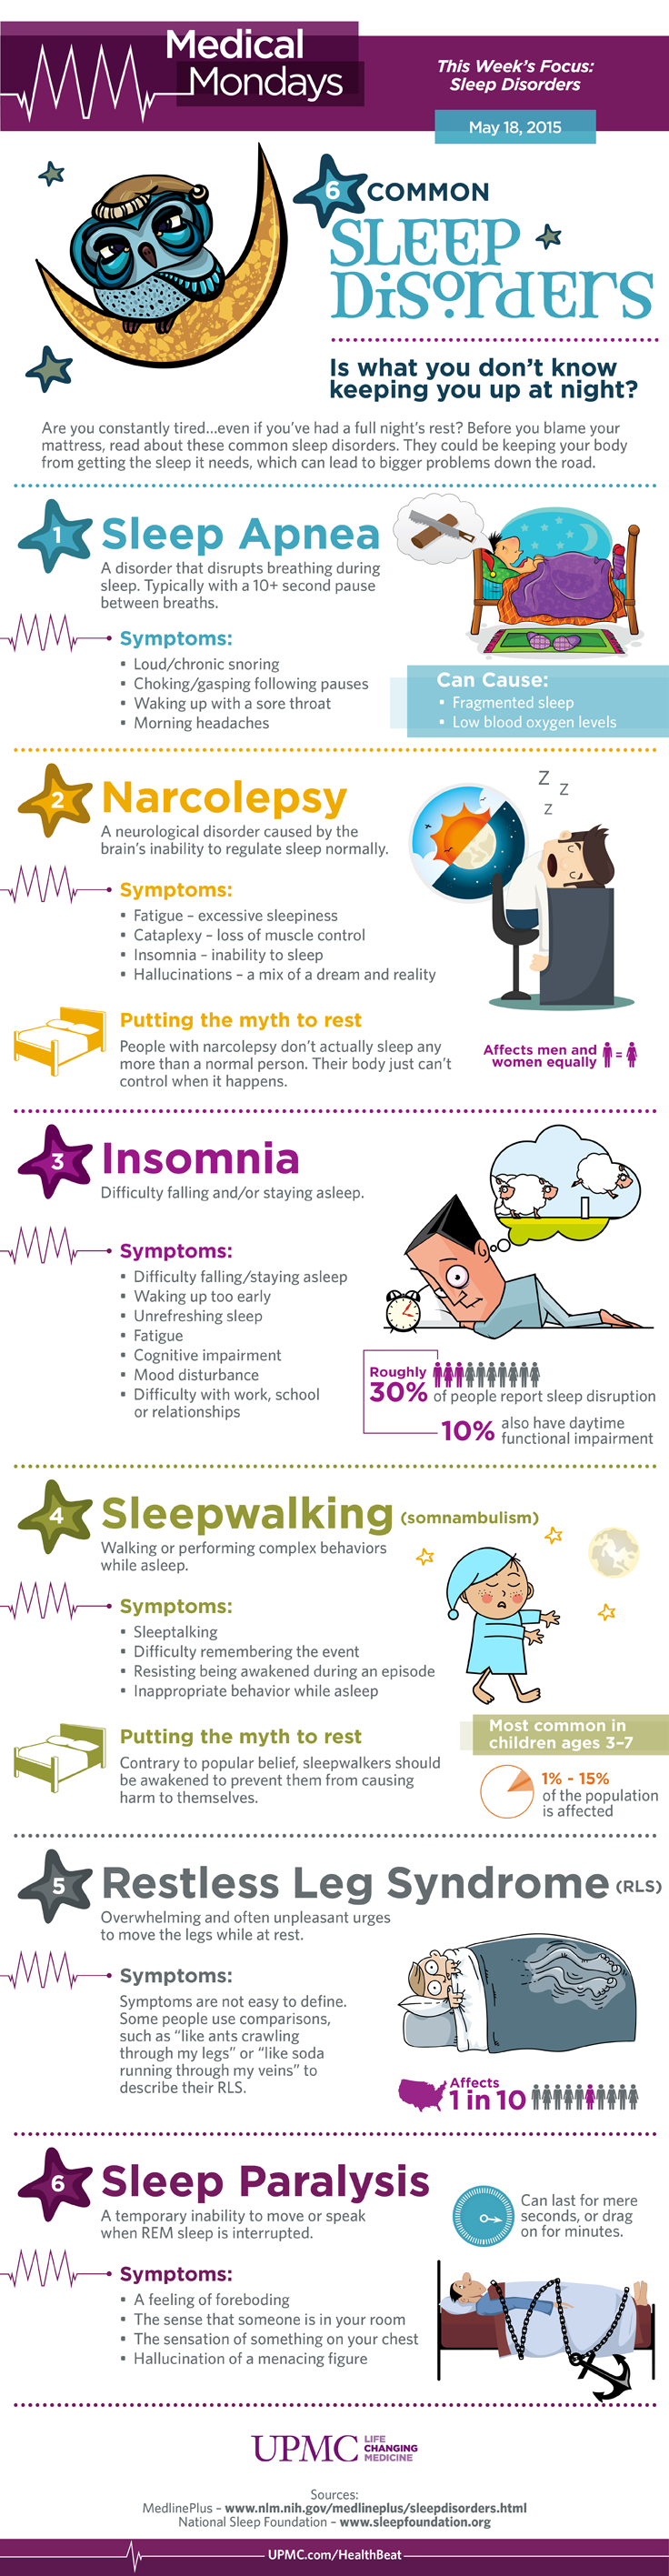 Sleep disorders that are potentially disturbing your sleep